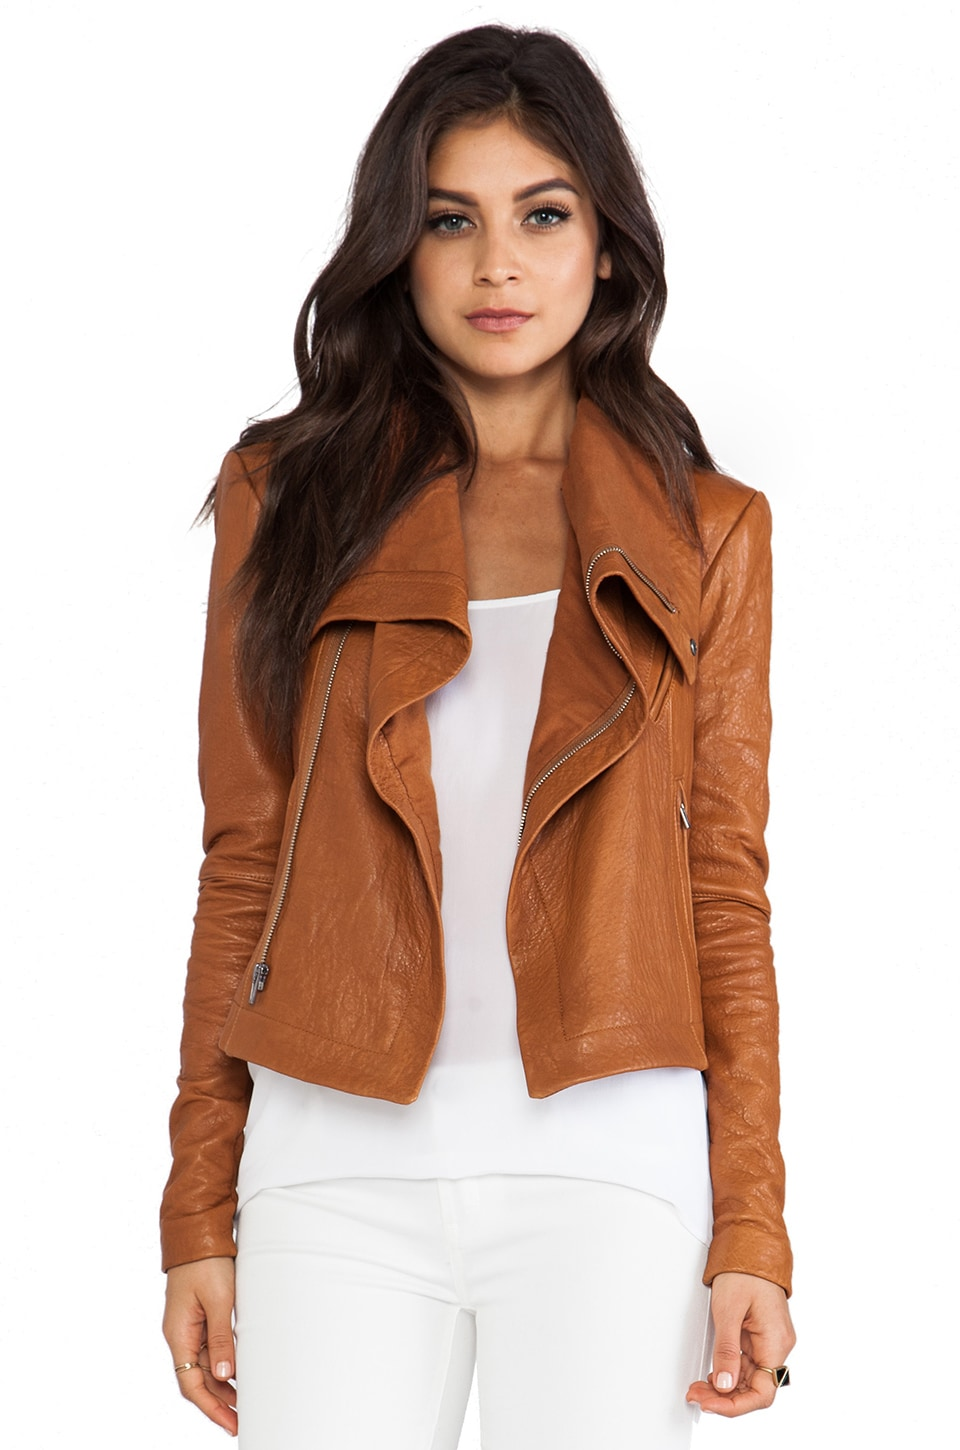 VEDA Max Classic Jacket in Tan